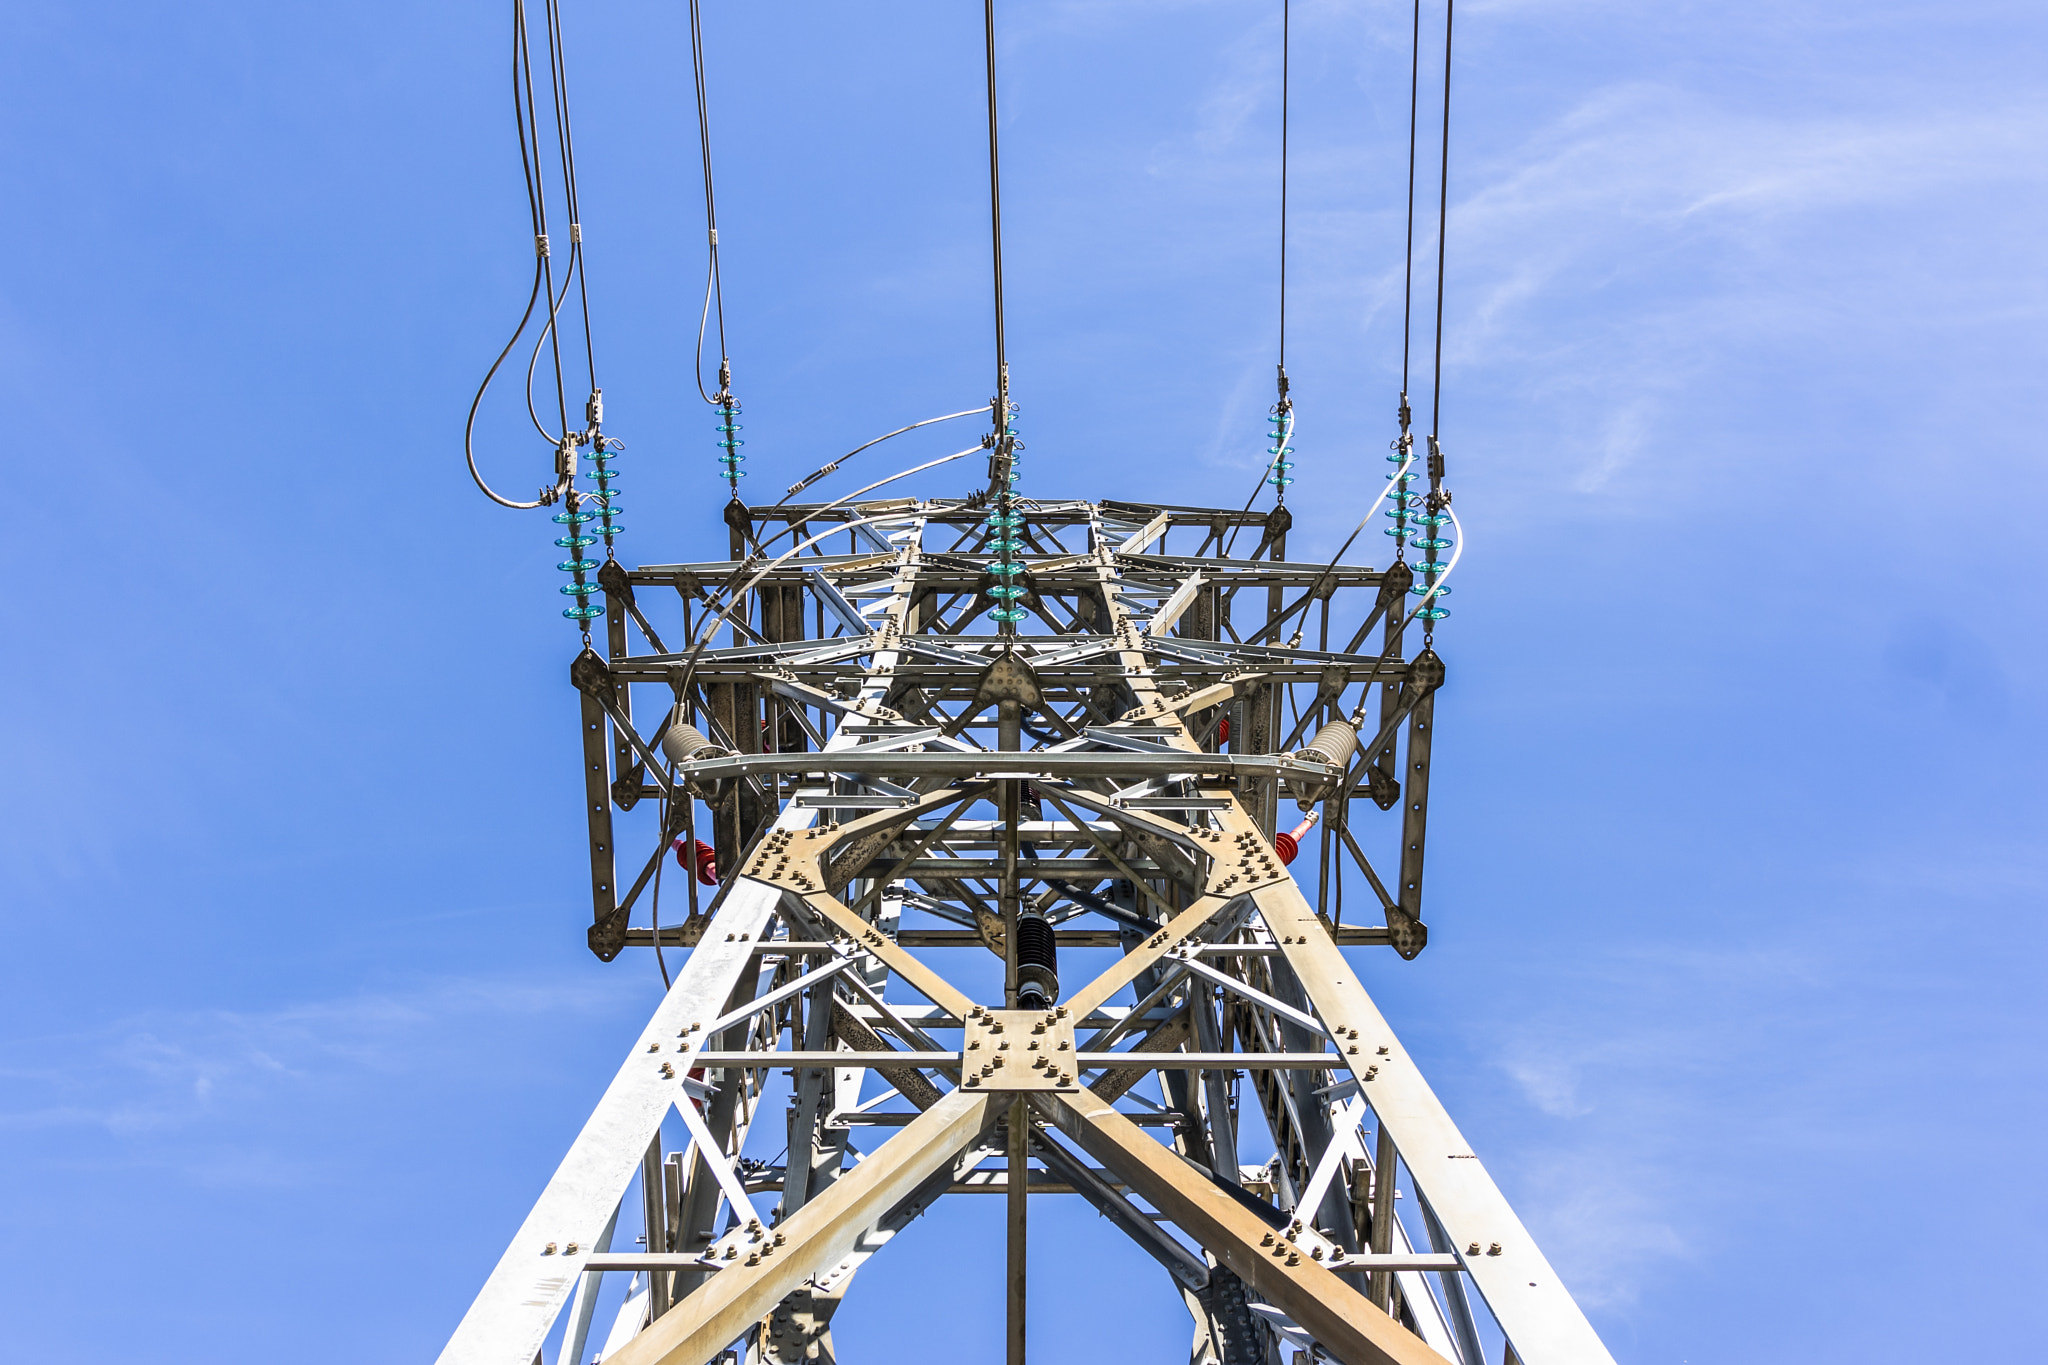 Transmission Tower from a low angle